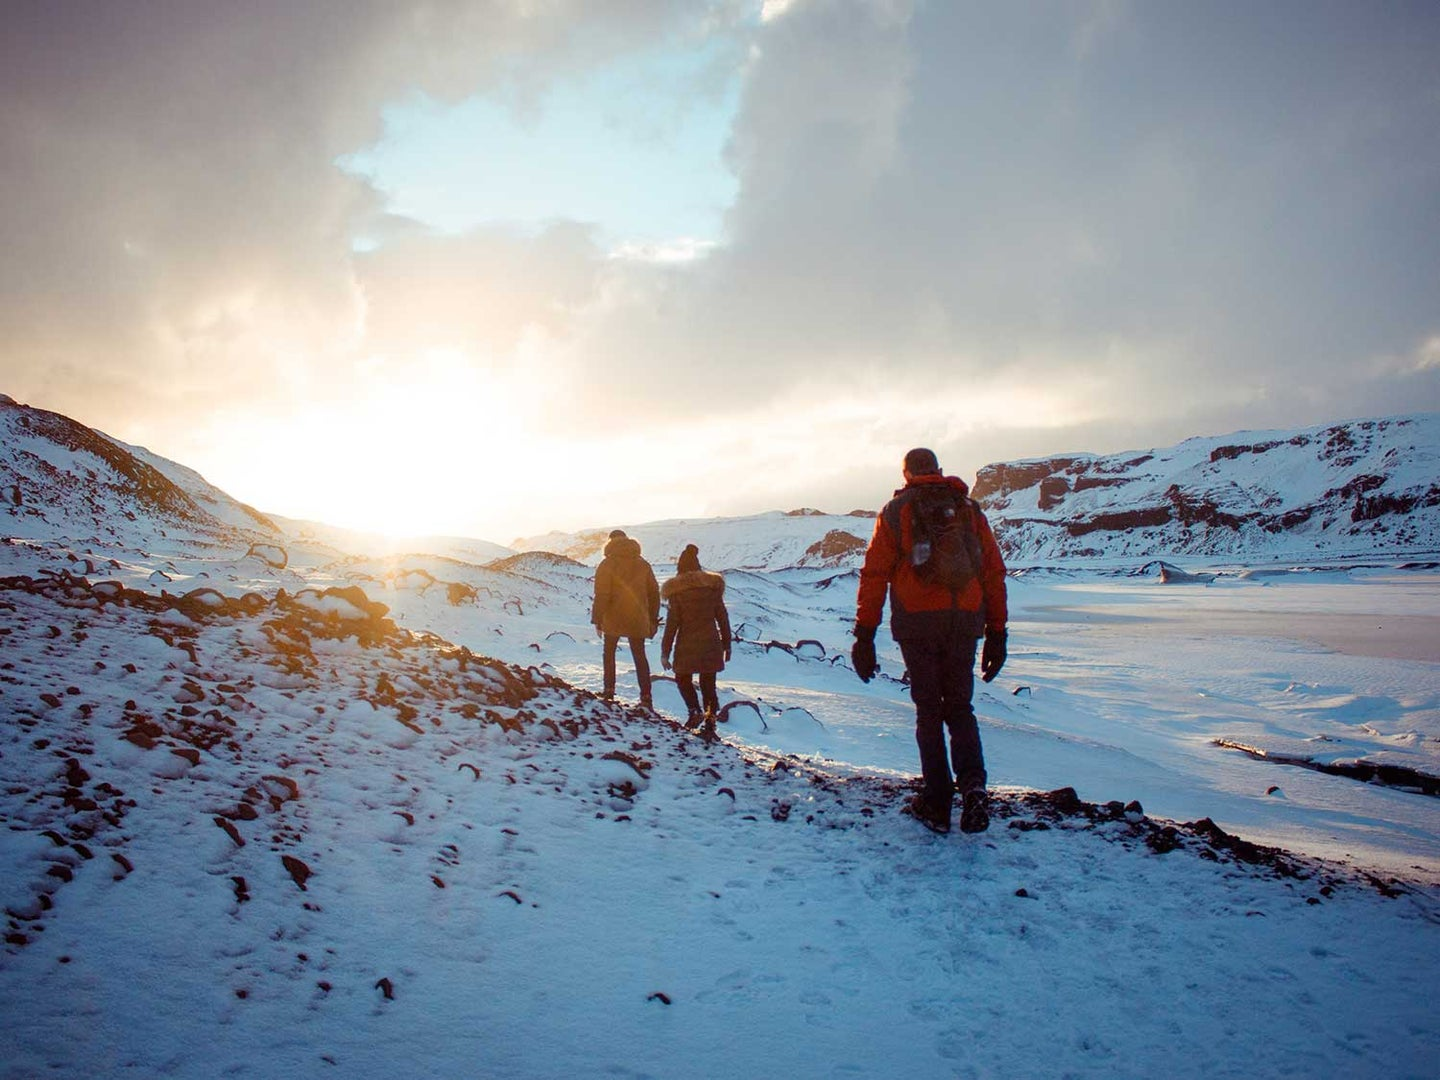 People hiking through snowy mountains.